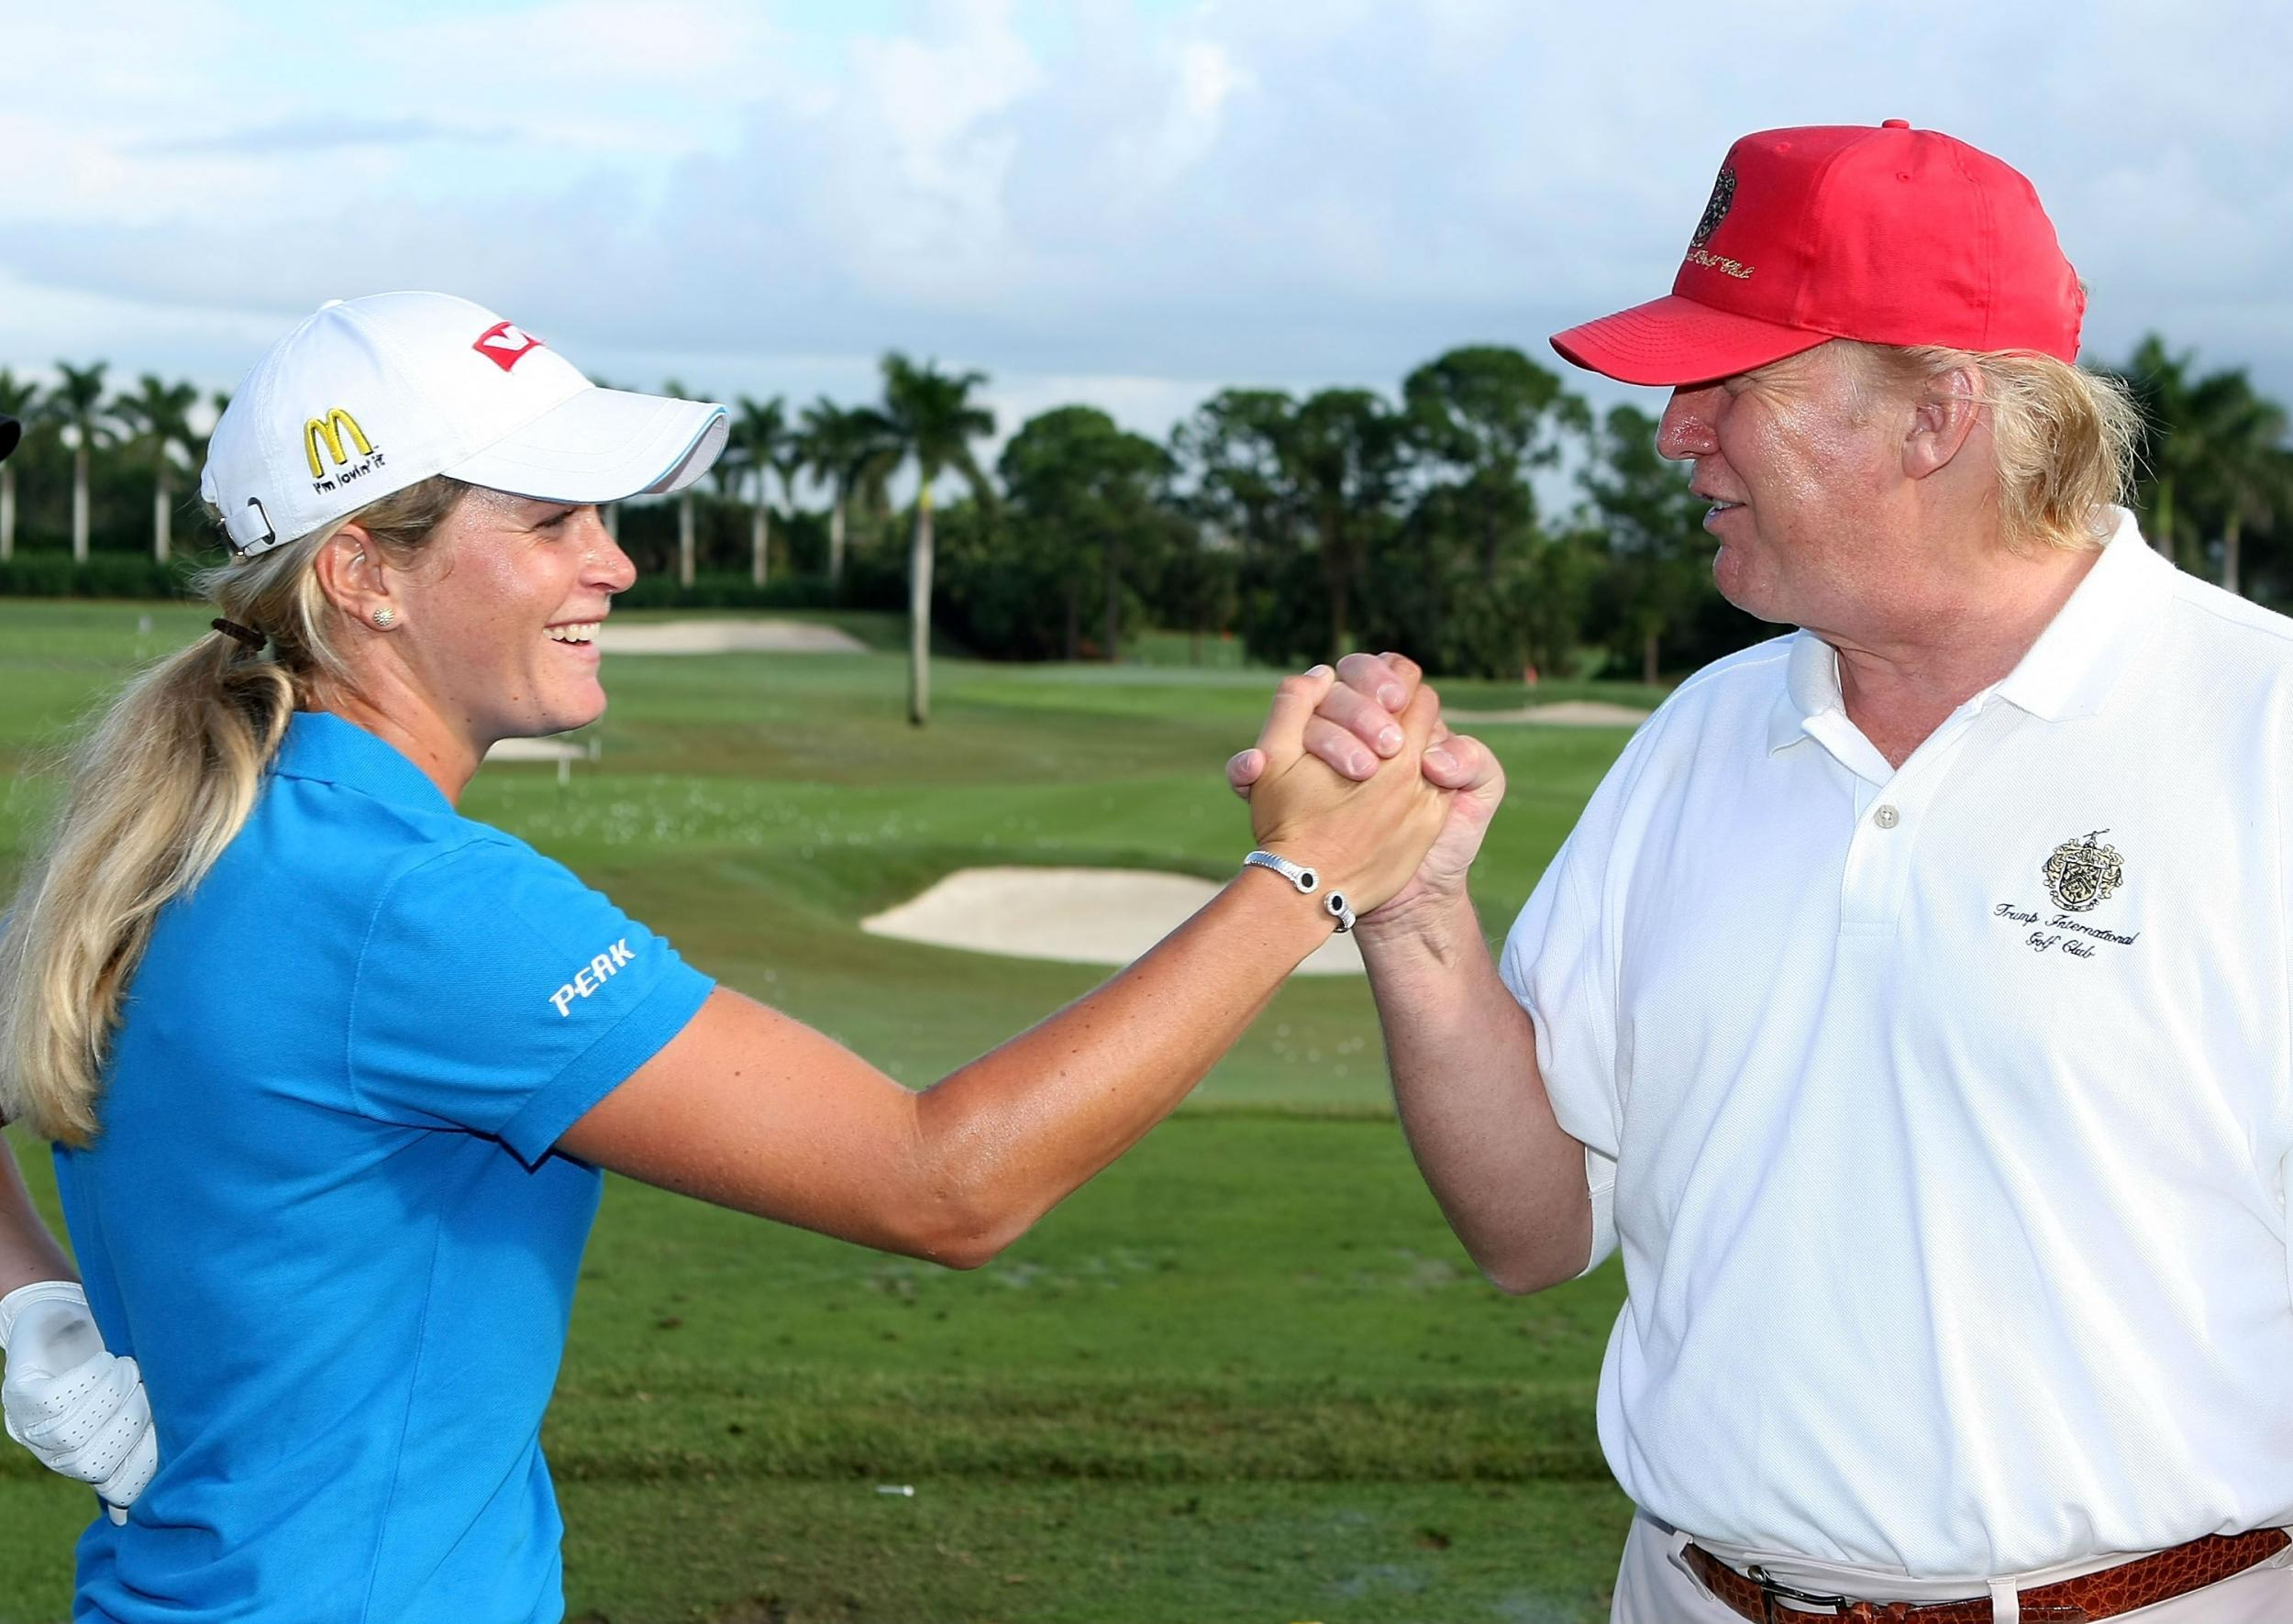 a39bd6f5e6d Donald Trump  cheats like hell  on the golf course says President s pro  golfing partner